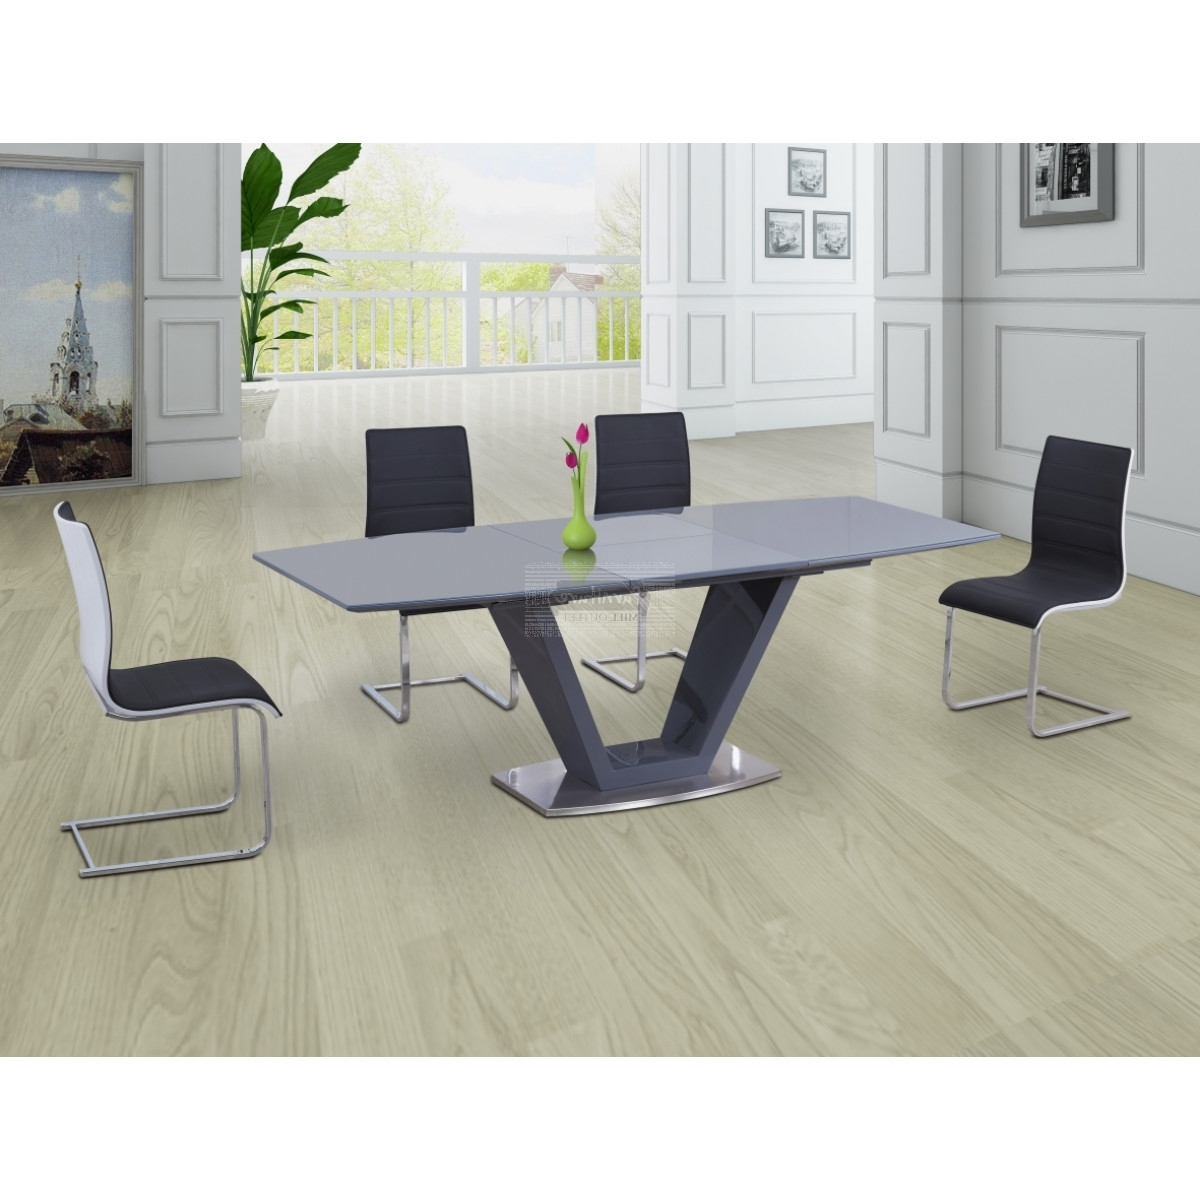 Most Popular Lorgato Grey High Gloss Extending Dining Table – 160Cm To 220Cm Regarding White Gloss Extending Dining Tables (View 14 of 25)